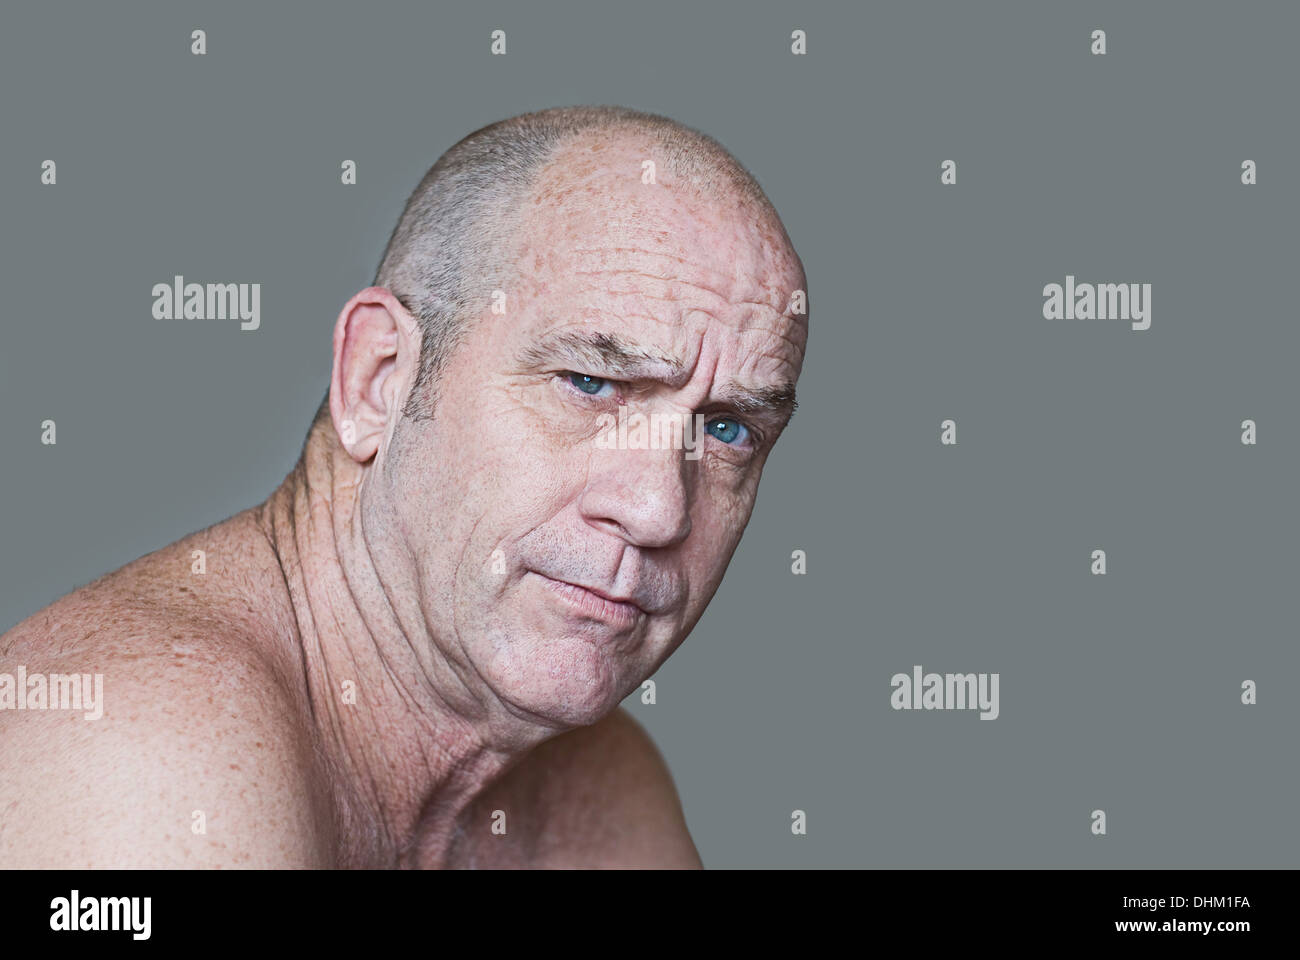 Skeptical Man - Stock Image